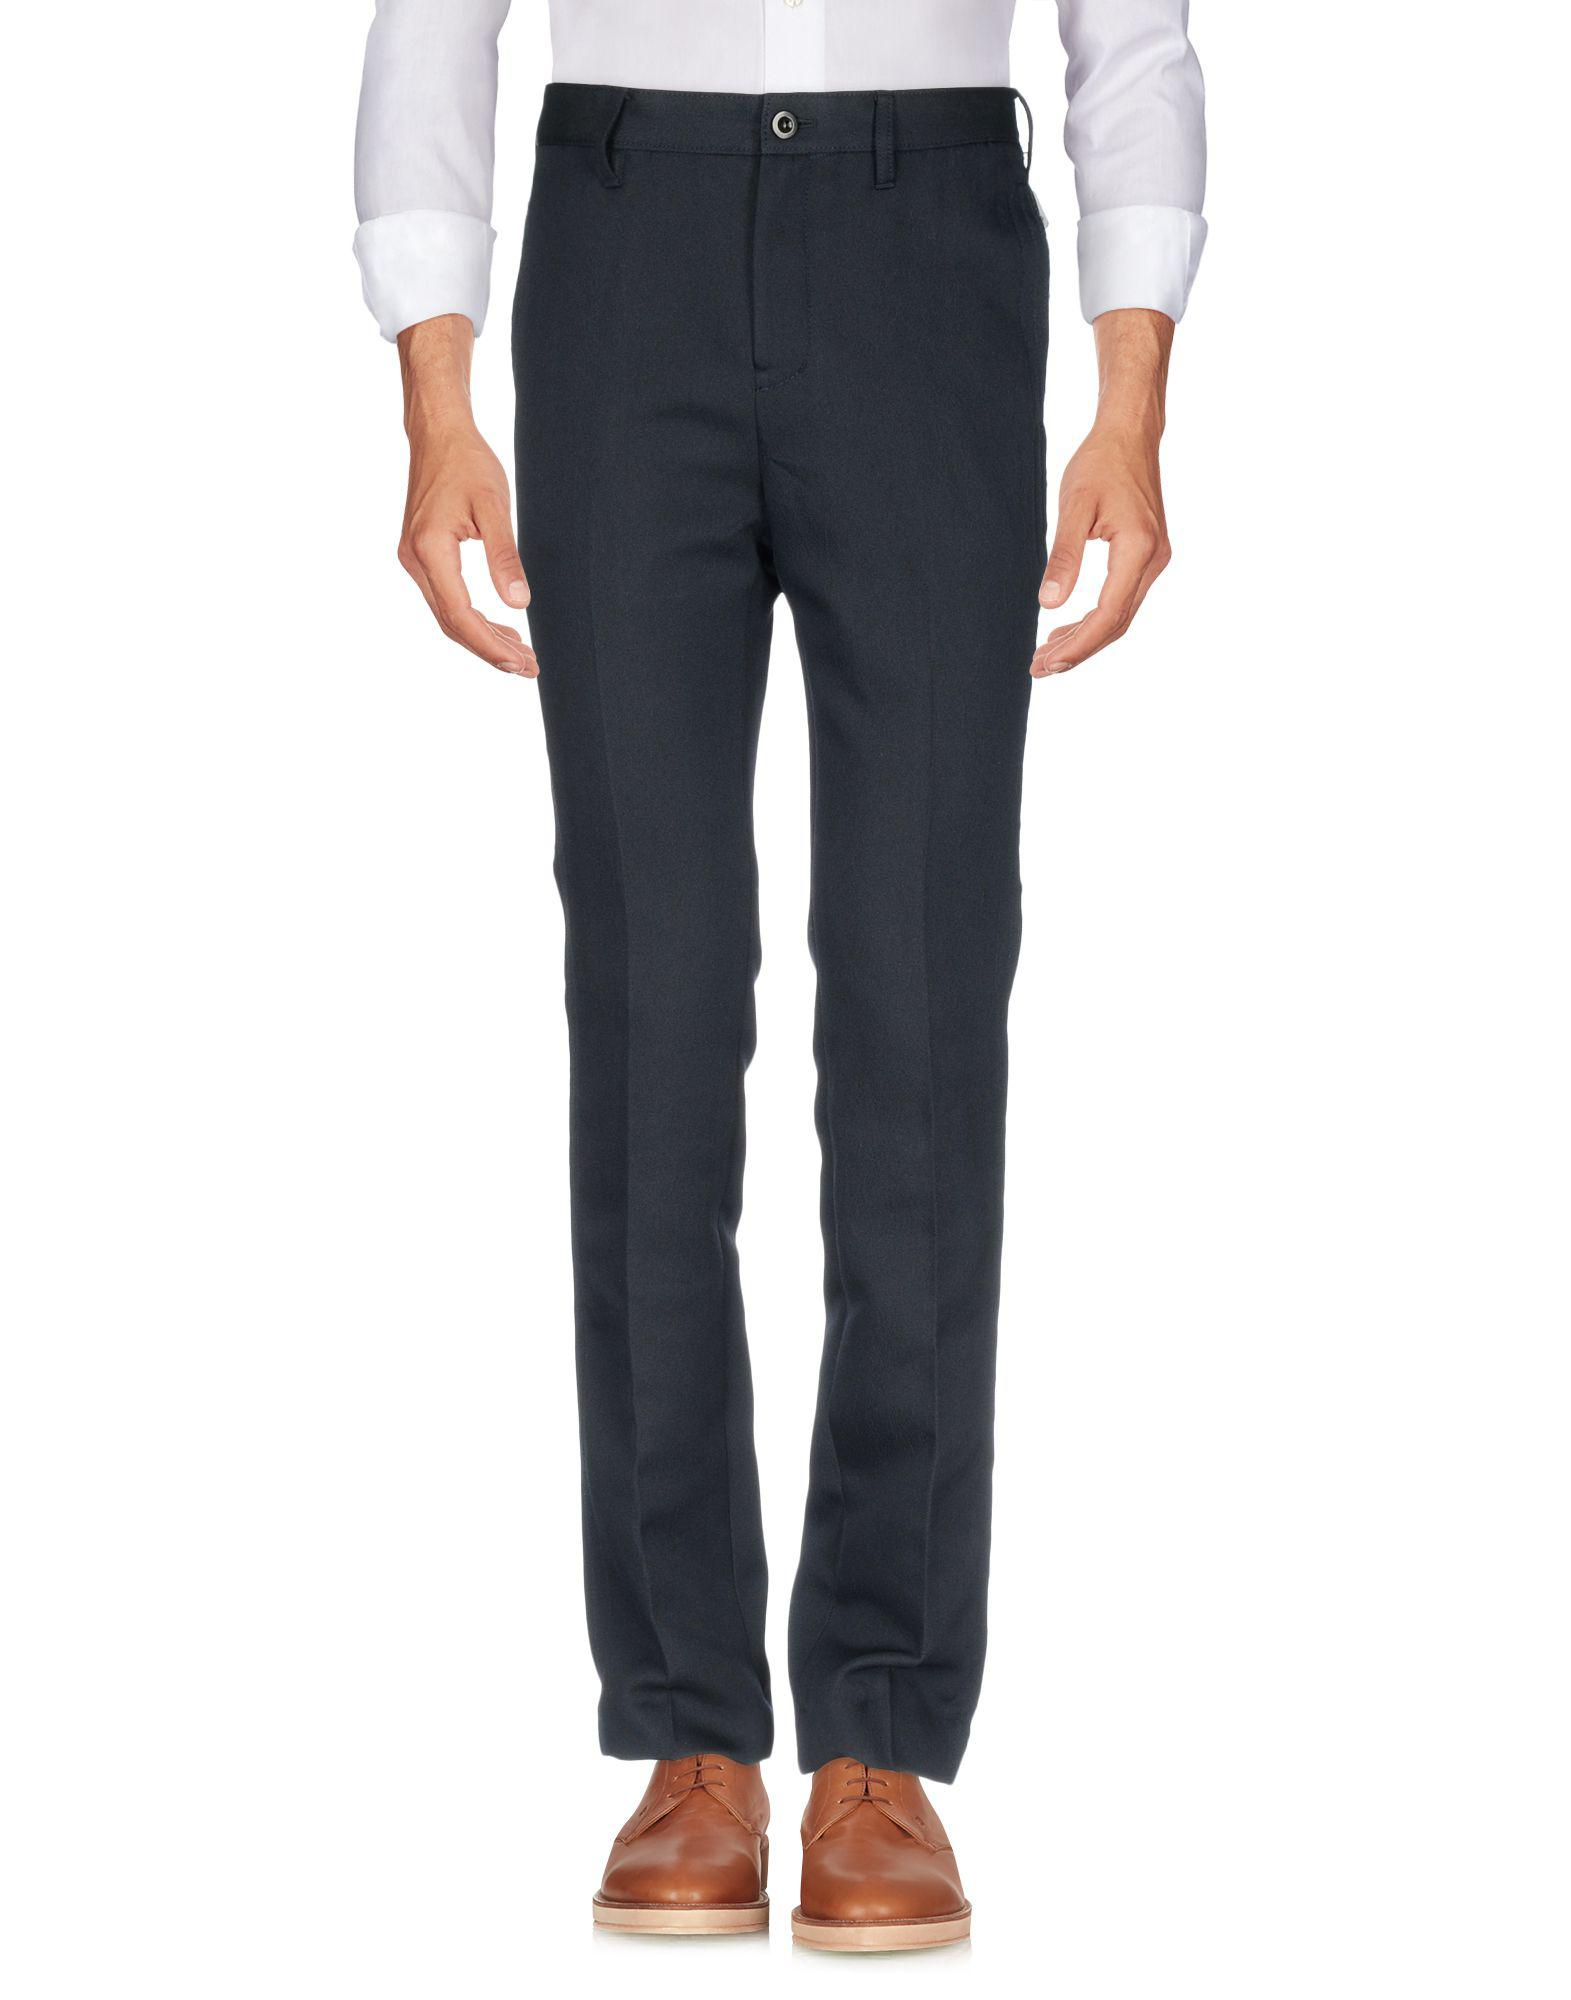 TROUSERS - Casual trousers sacai Cheap Many Kinds Of Brand New Unisex Online Sale Wide Range Of Lowest Price Cheap Online 1XD48